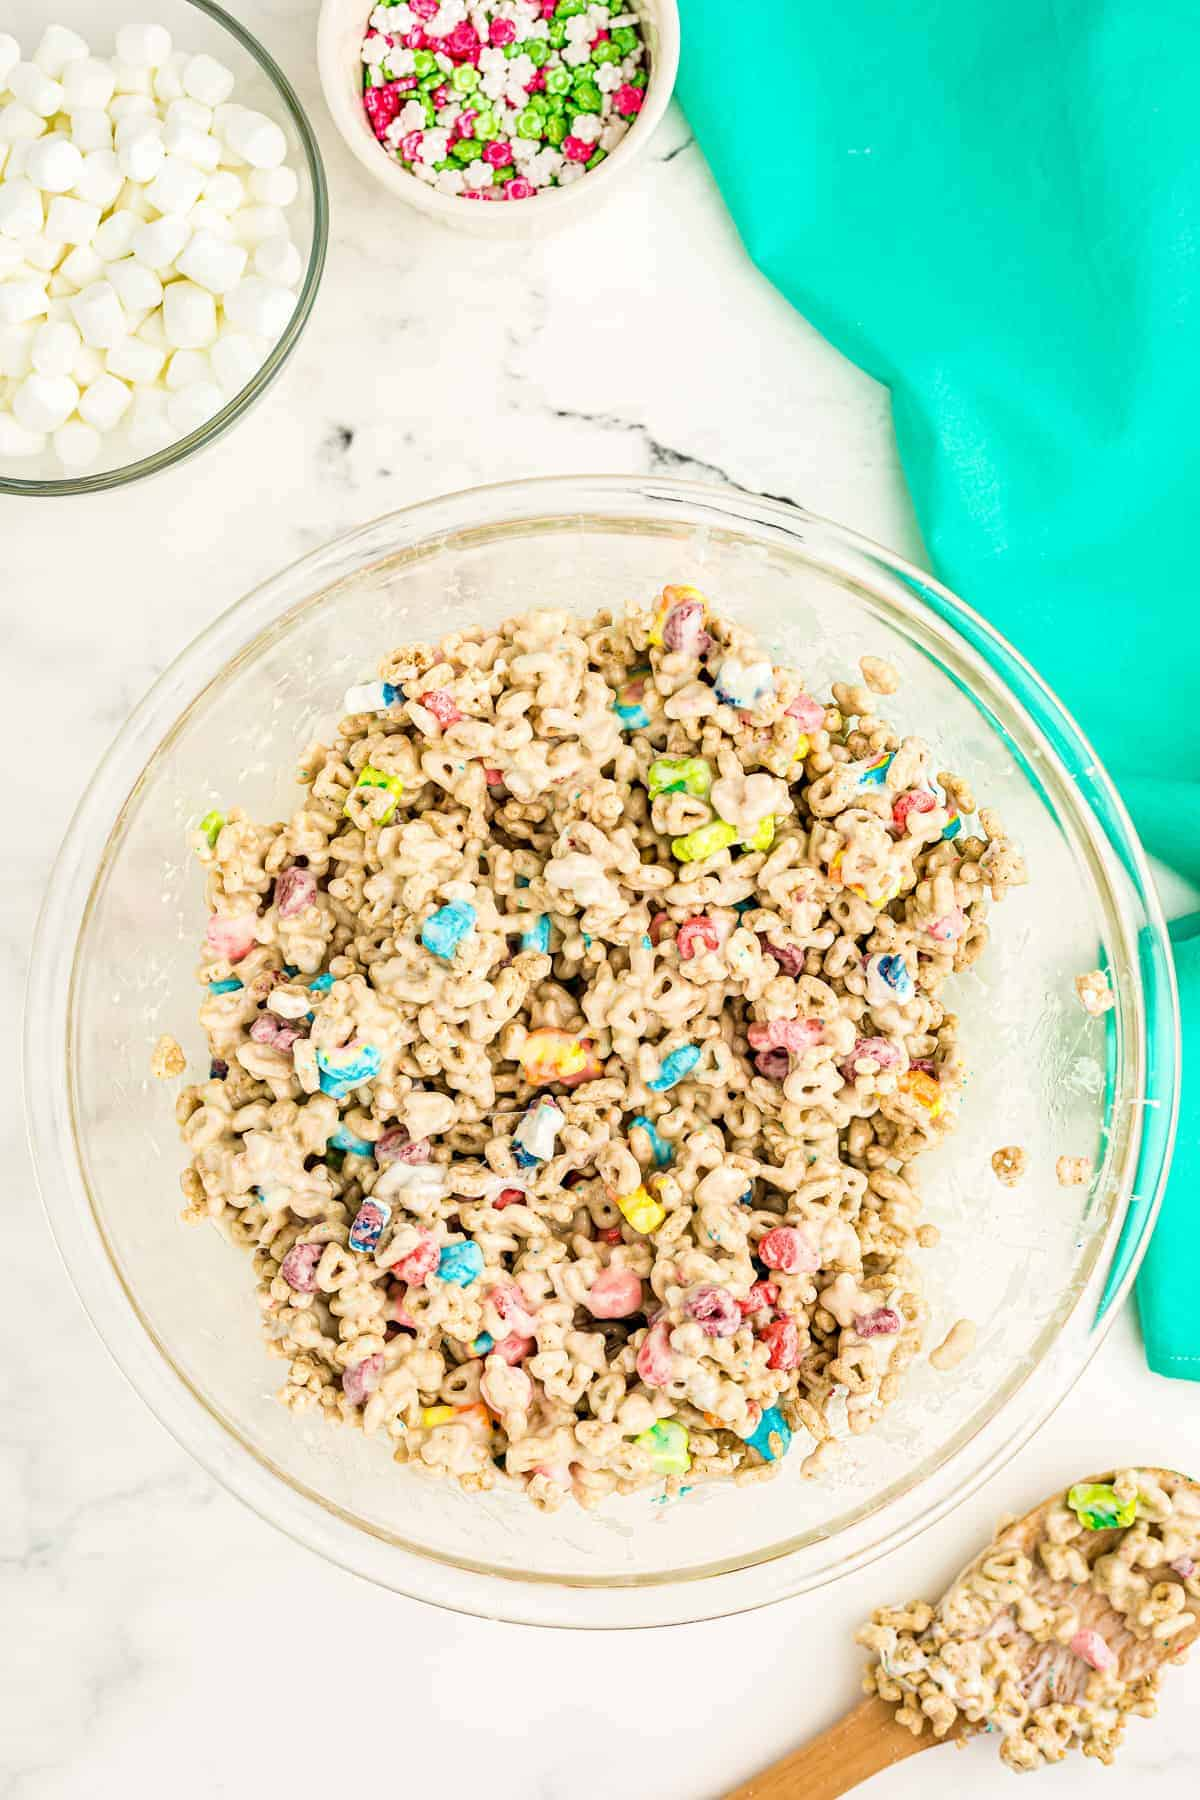 Bowl of Lucky charms and marshmallows mixture